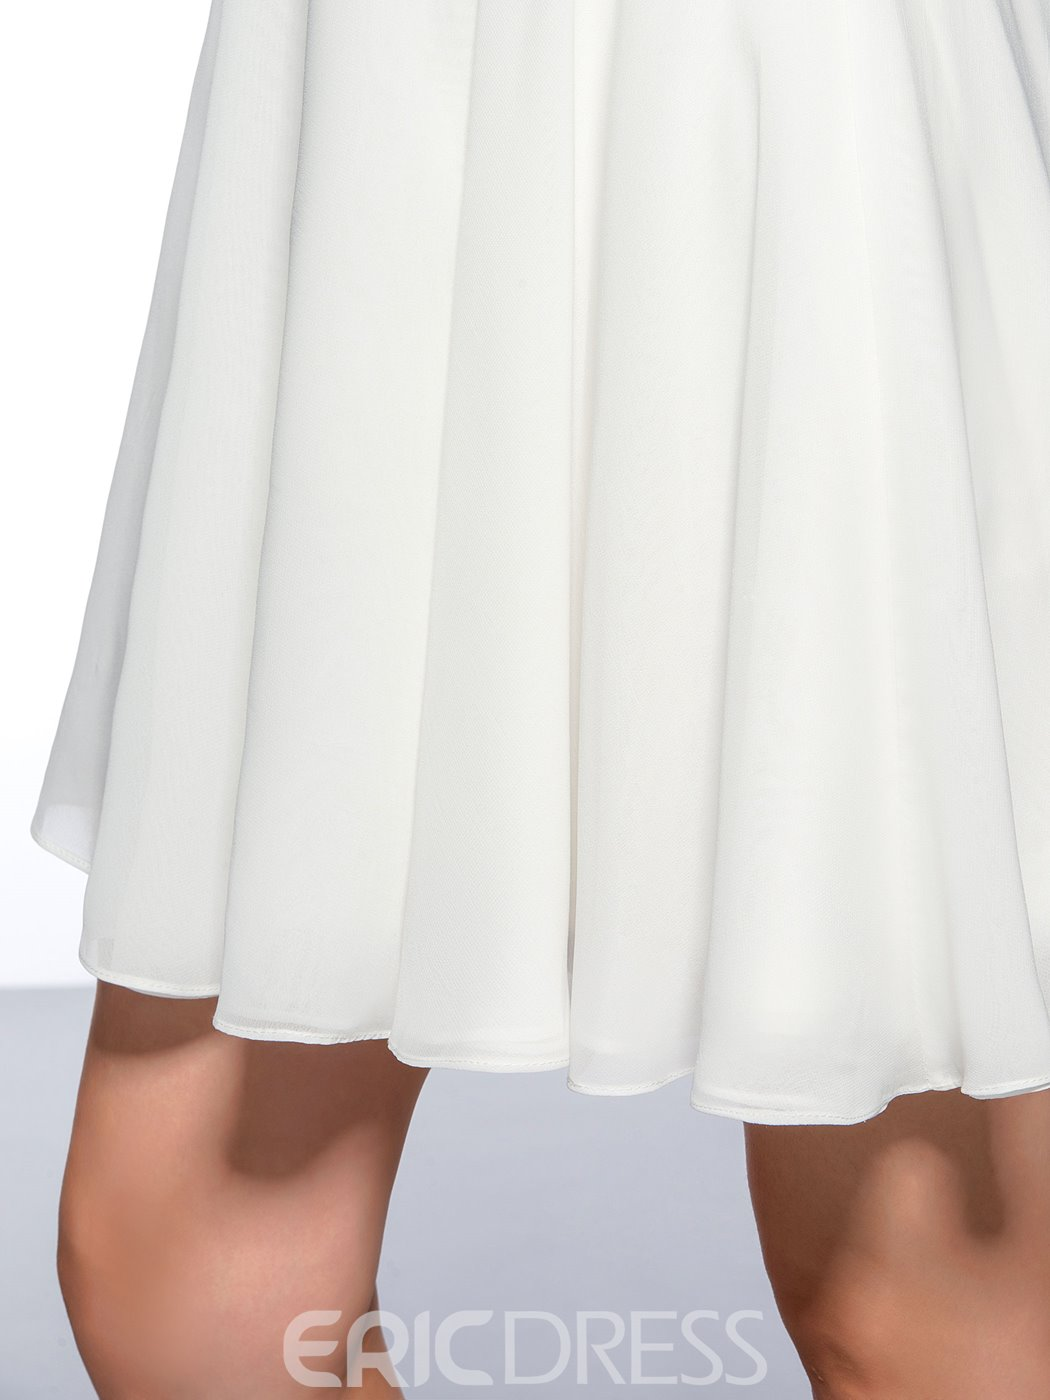 Concise High Neck Lace Short Homecoming Dress